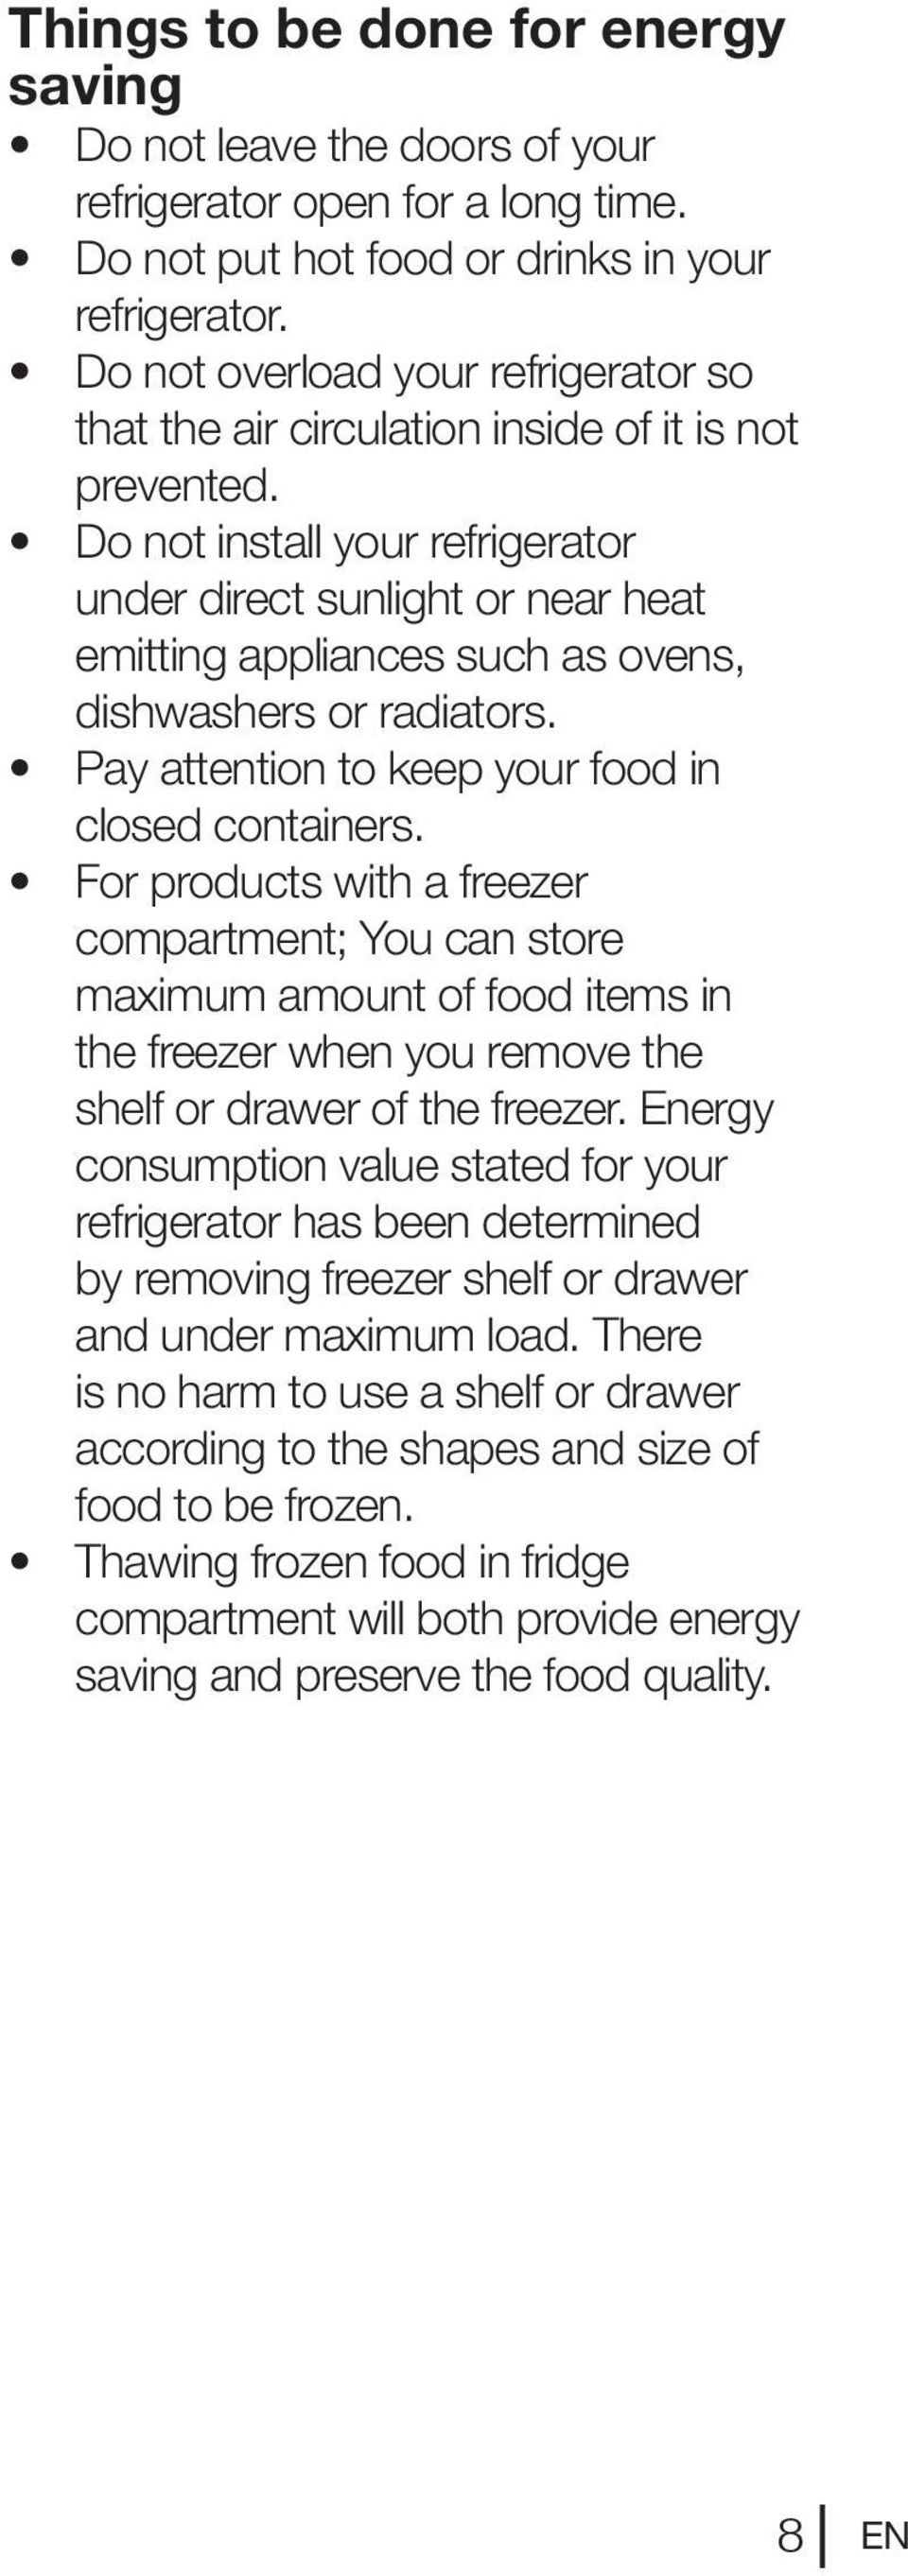 Do not install your refrigerator under direct sunlight or near heat emitting appliances such as ovens, dishwashers or radiators. Pay attention to keep your food in closed containers.